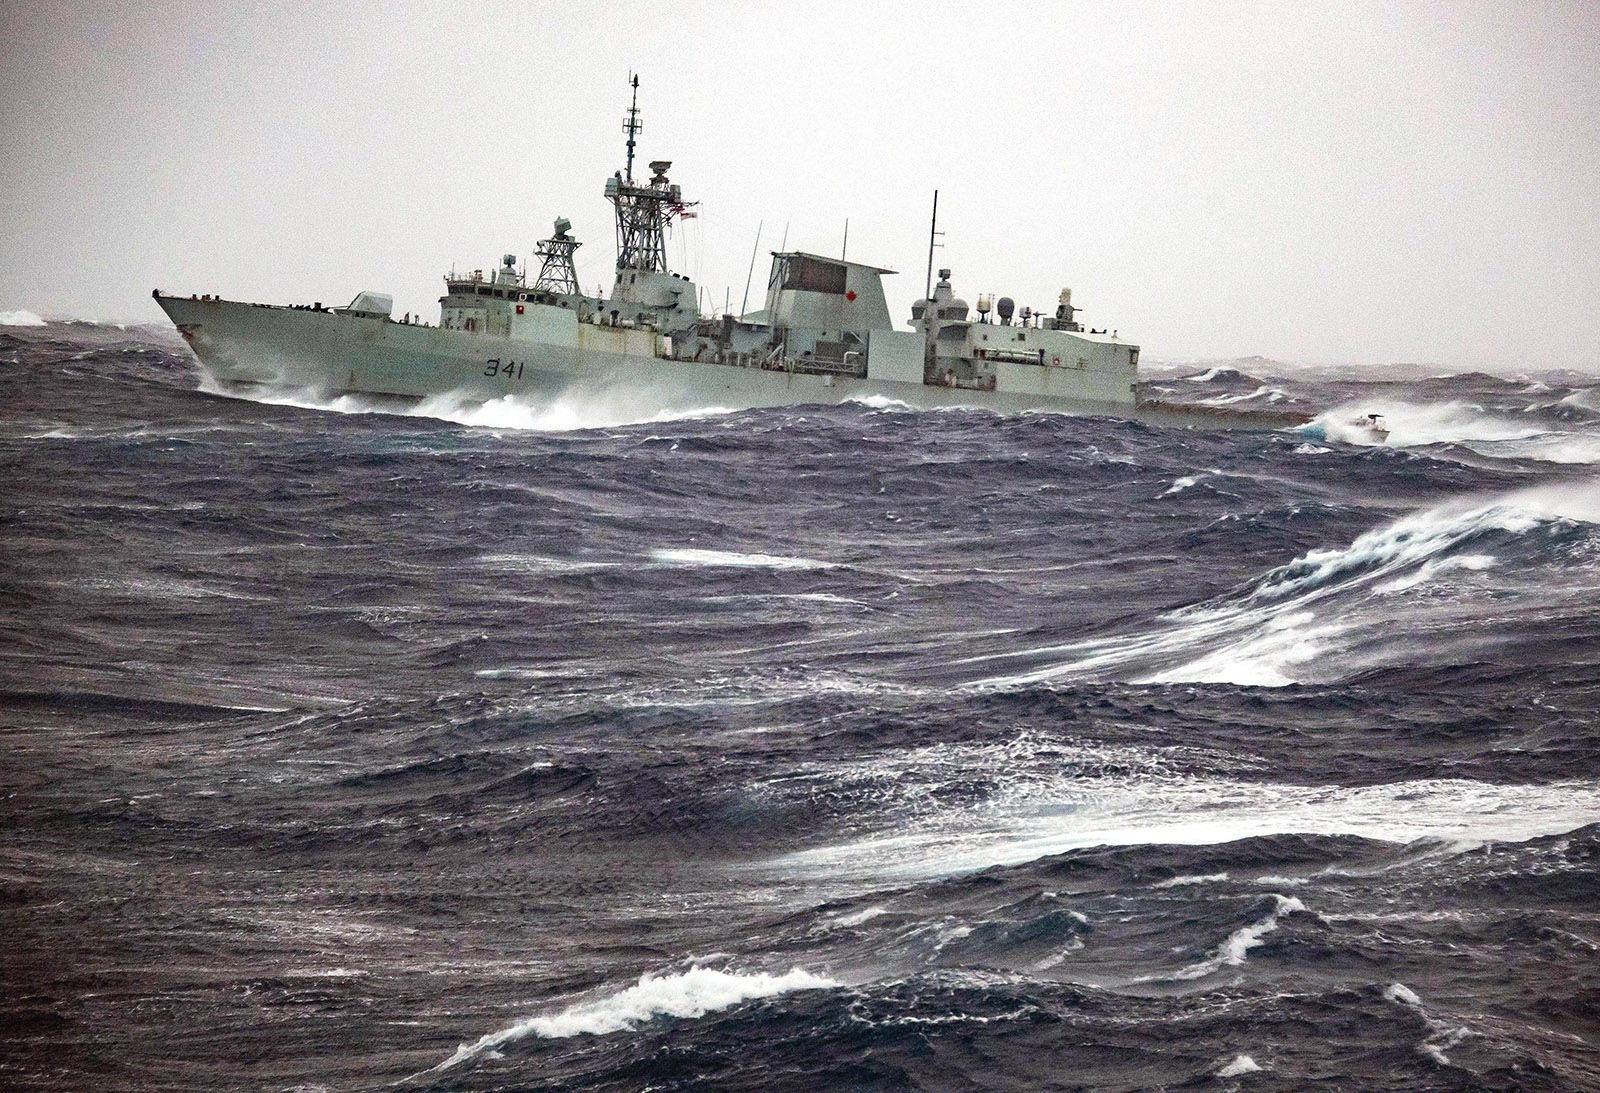 HMCS Ottawa sails through heavy seas in February.